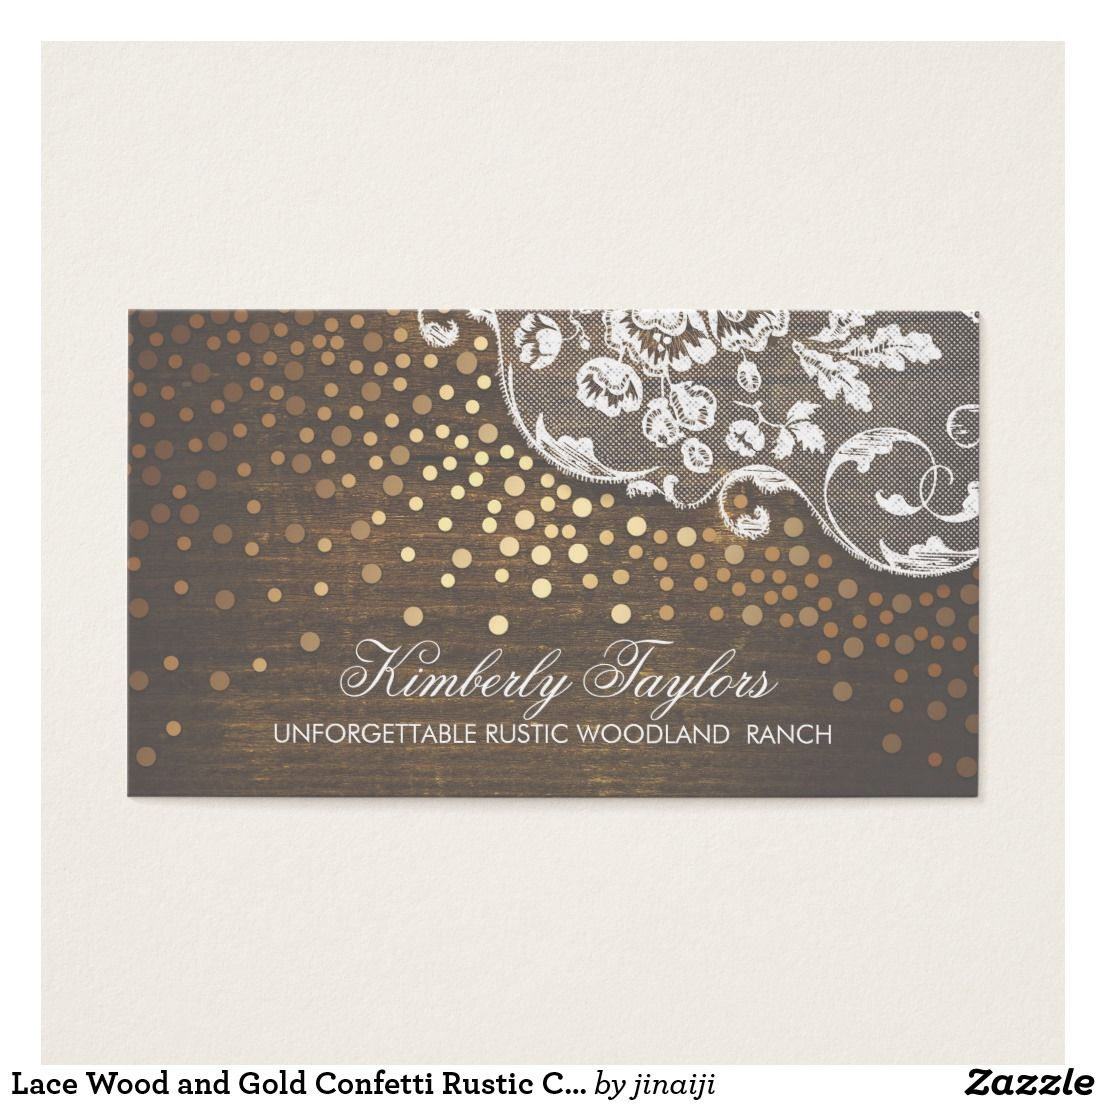 Lace Wood and Gold Confetti Rustic Country Business Card   Gold ...